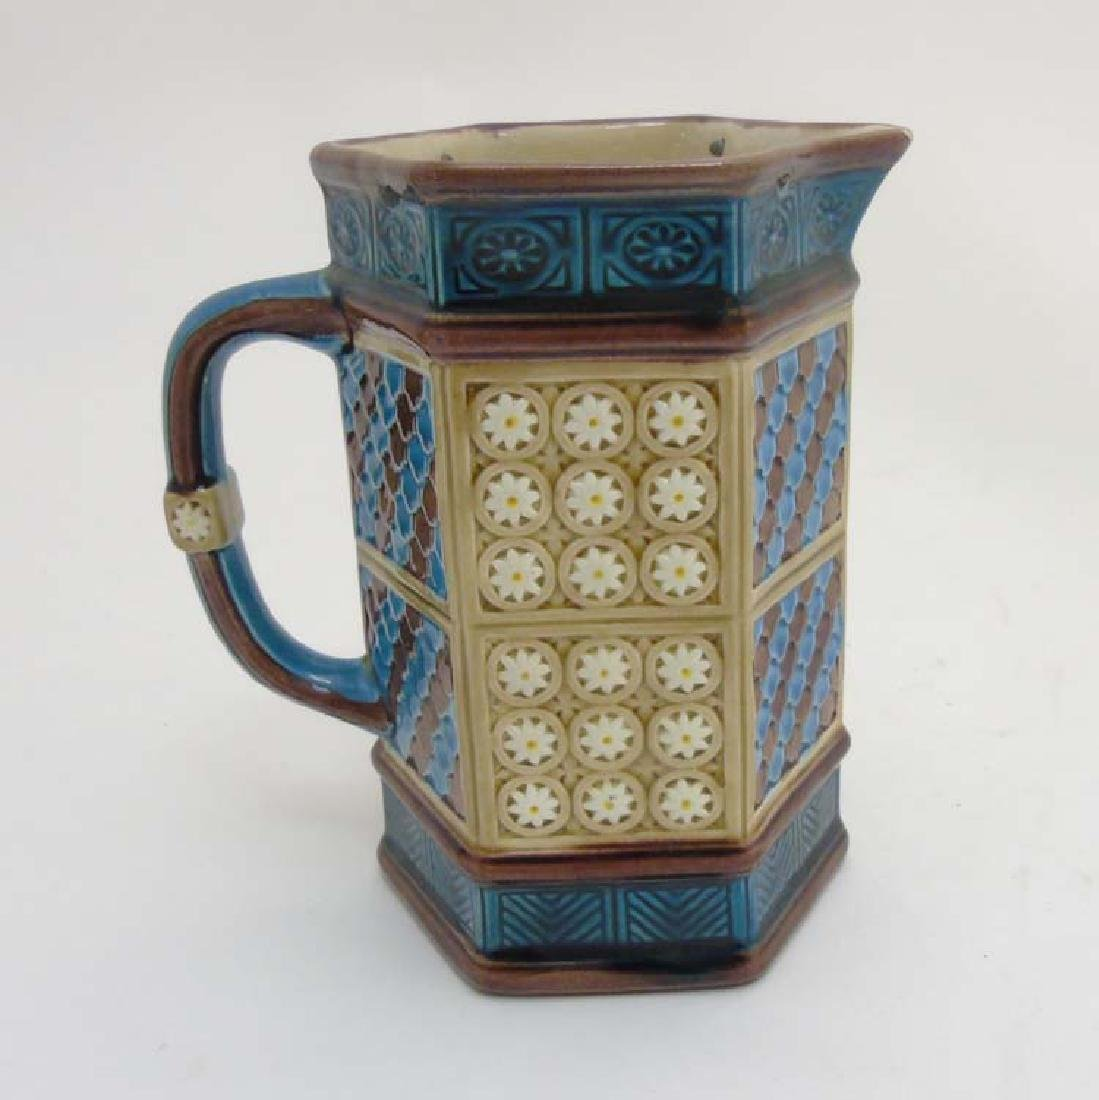 A late 19thC Wedgwood Majolica hexagonal pitcher/ jug